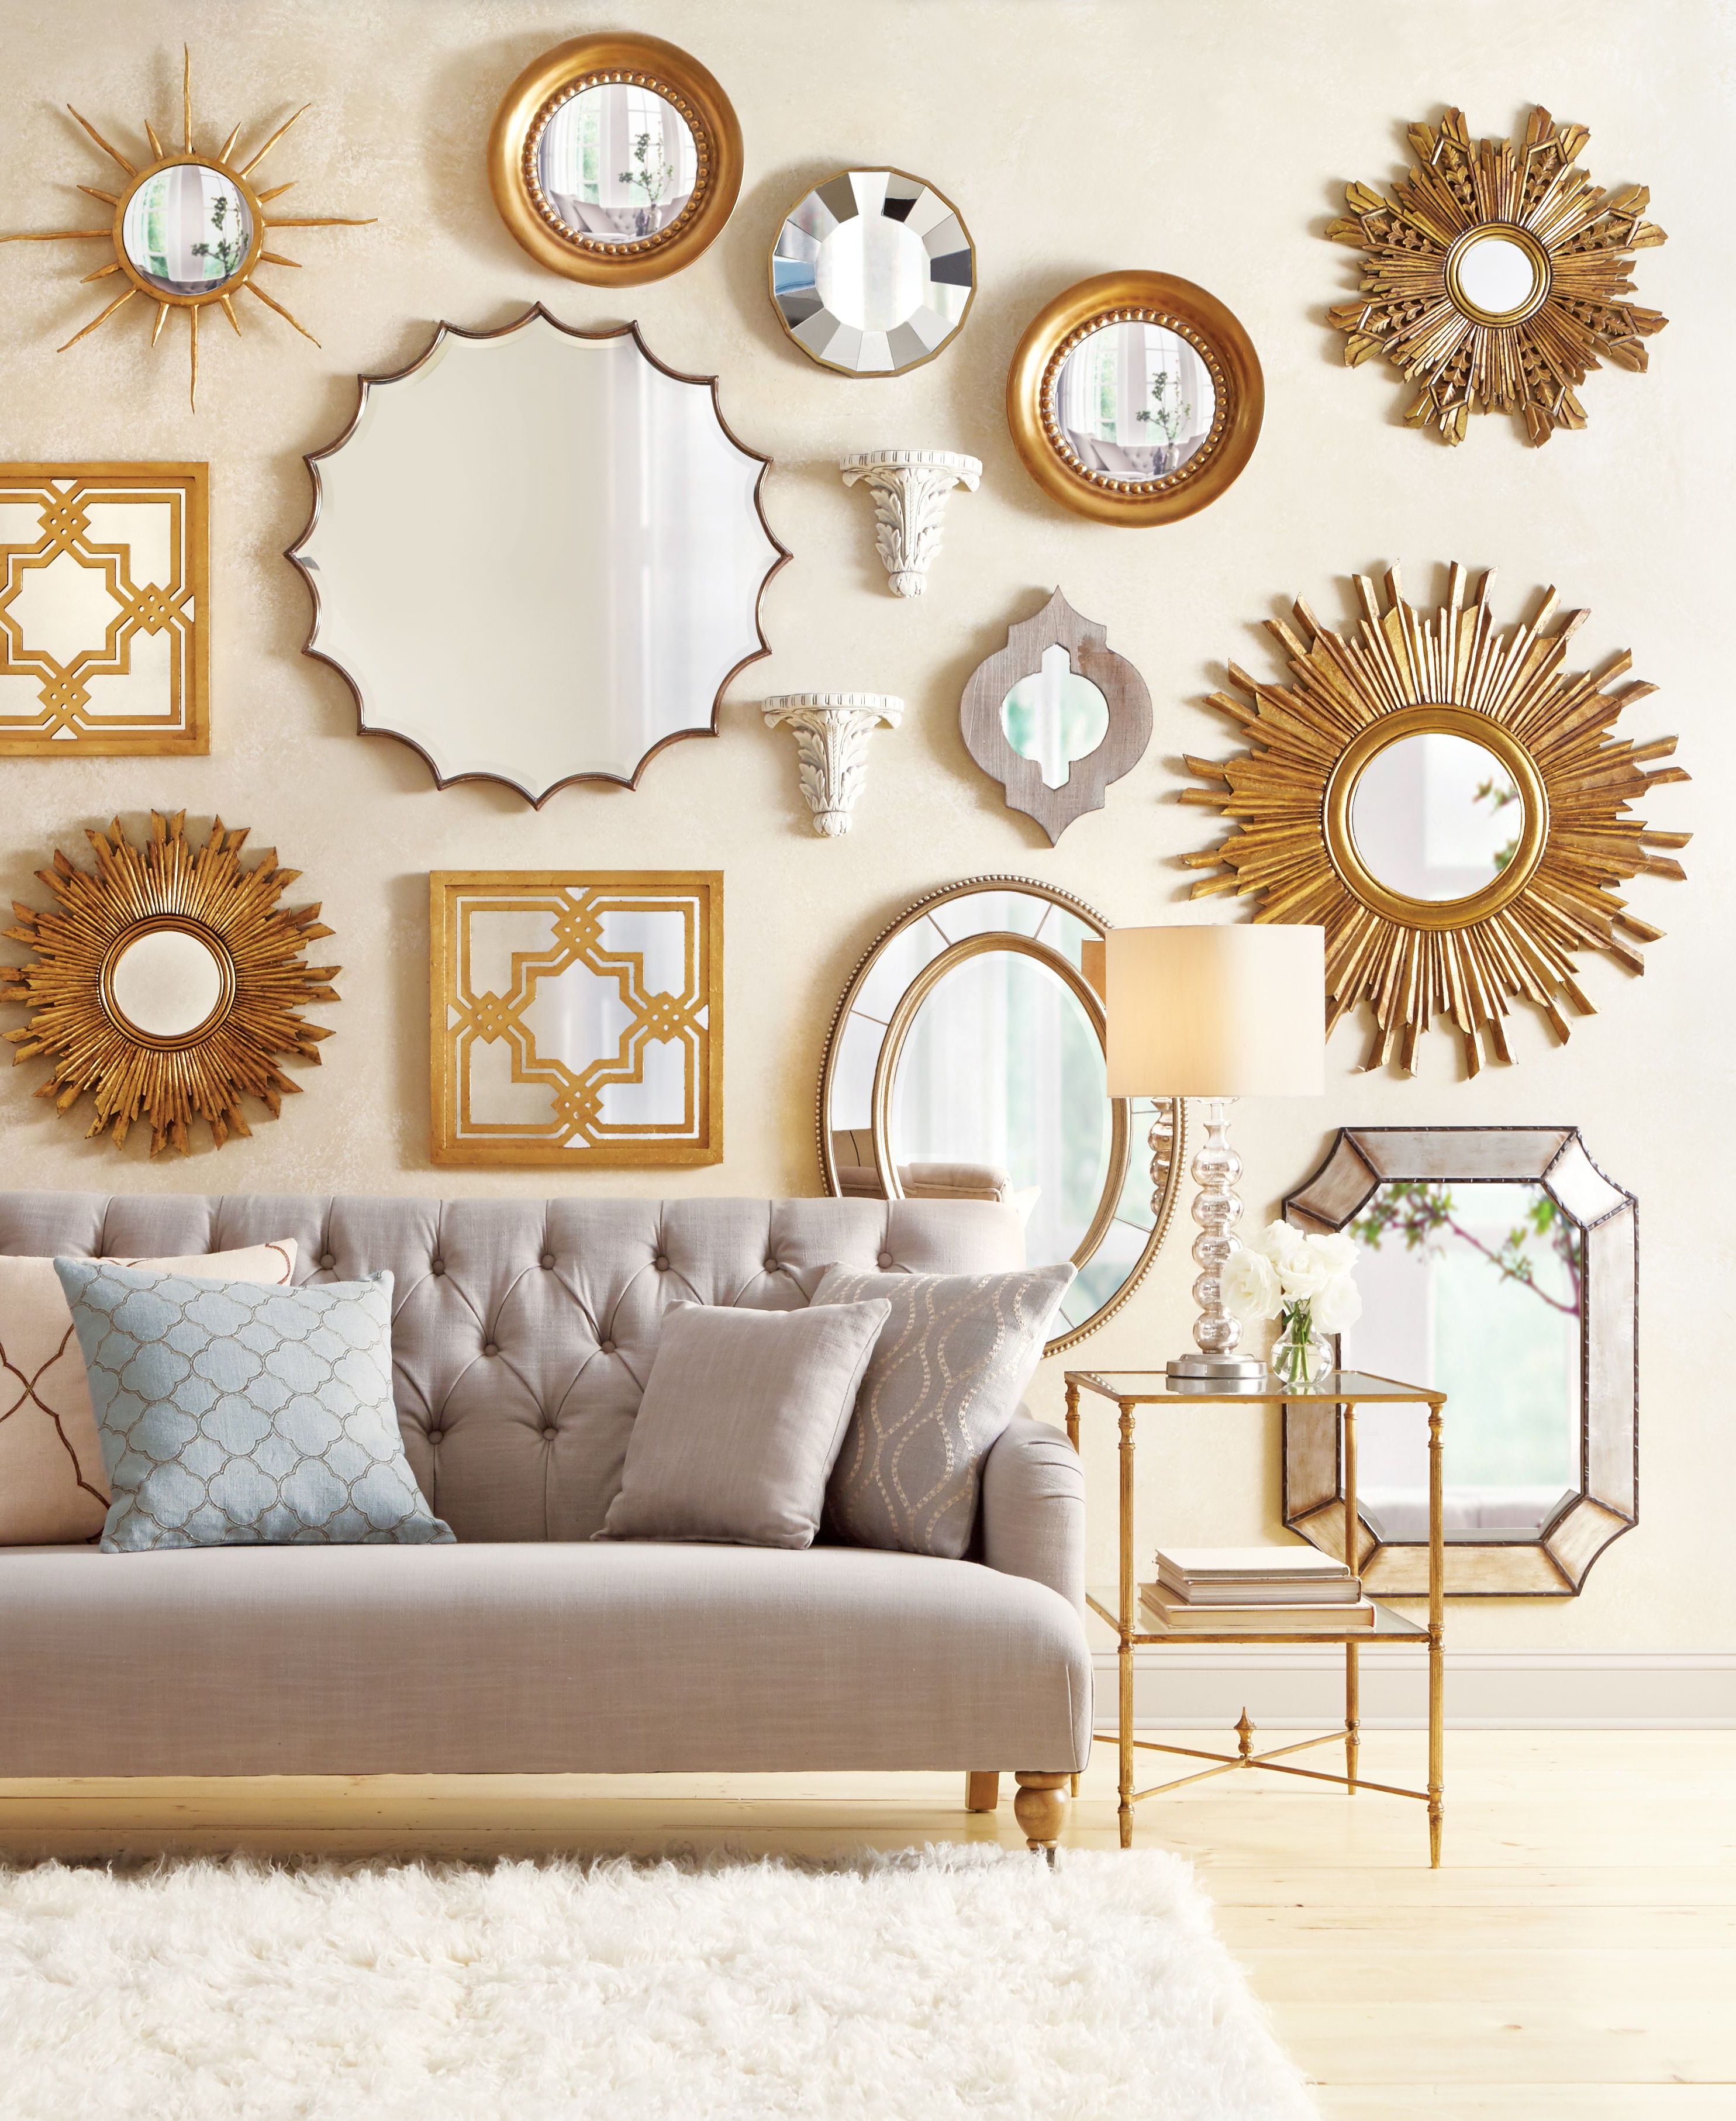 Stand Up Wall Mirrors Regarding Preferred Mirrors Make A Wall Stand Out So Well. Love This Gallery Wall Design (Gallery 14 of 20)